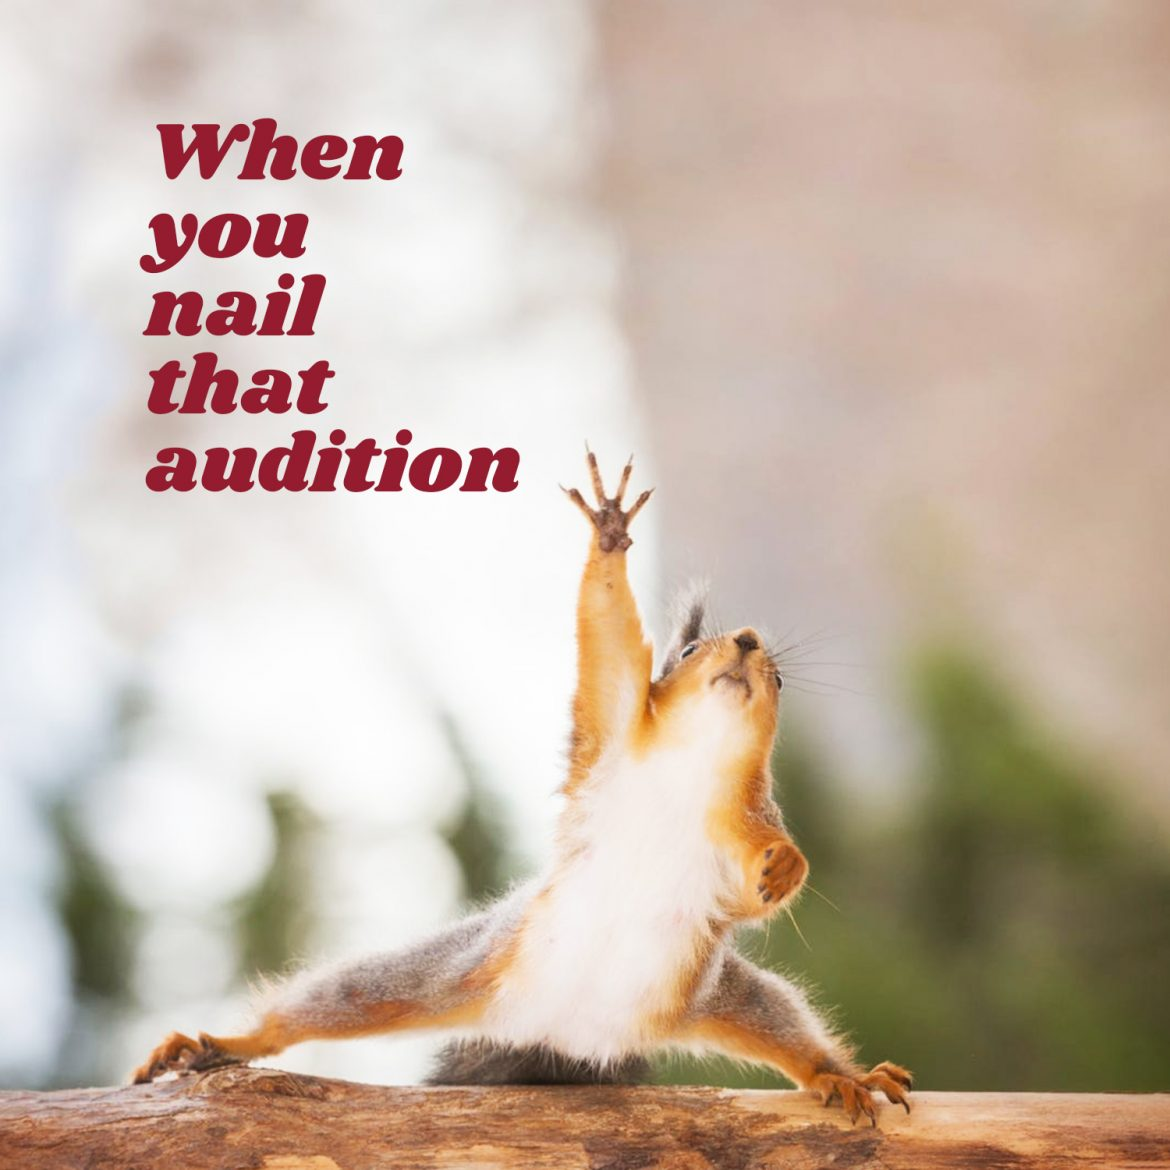 When you nail that audition